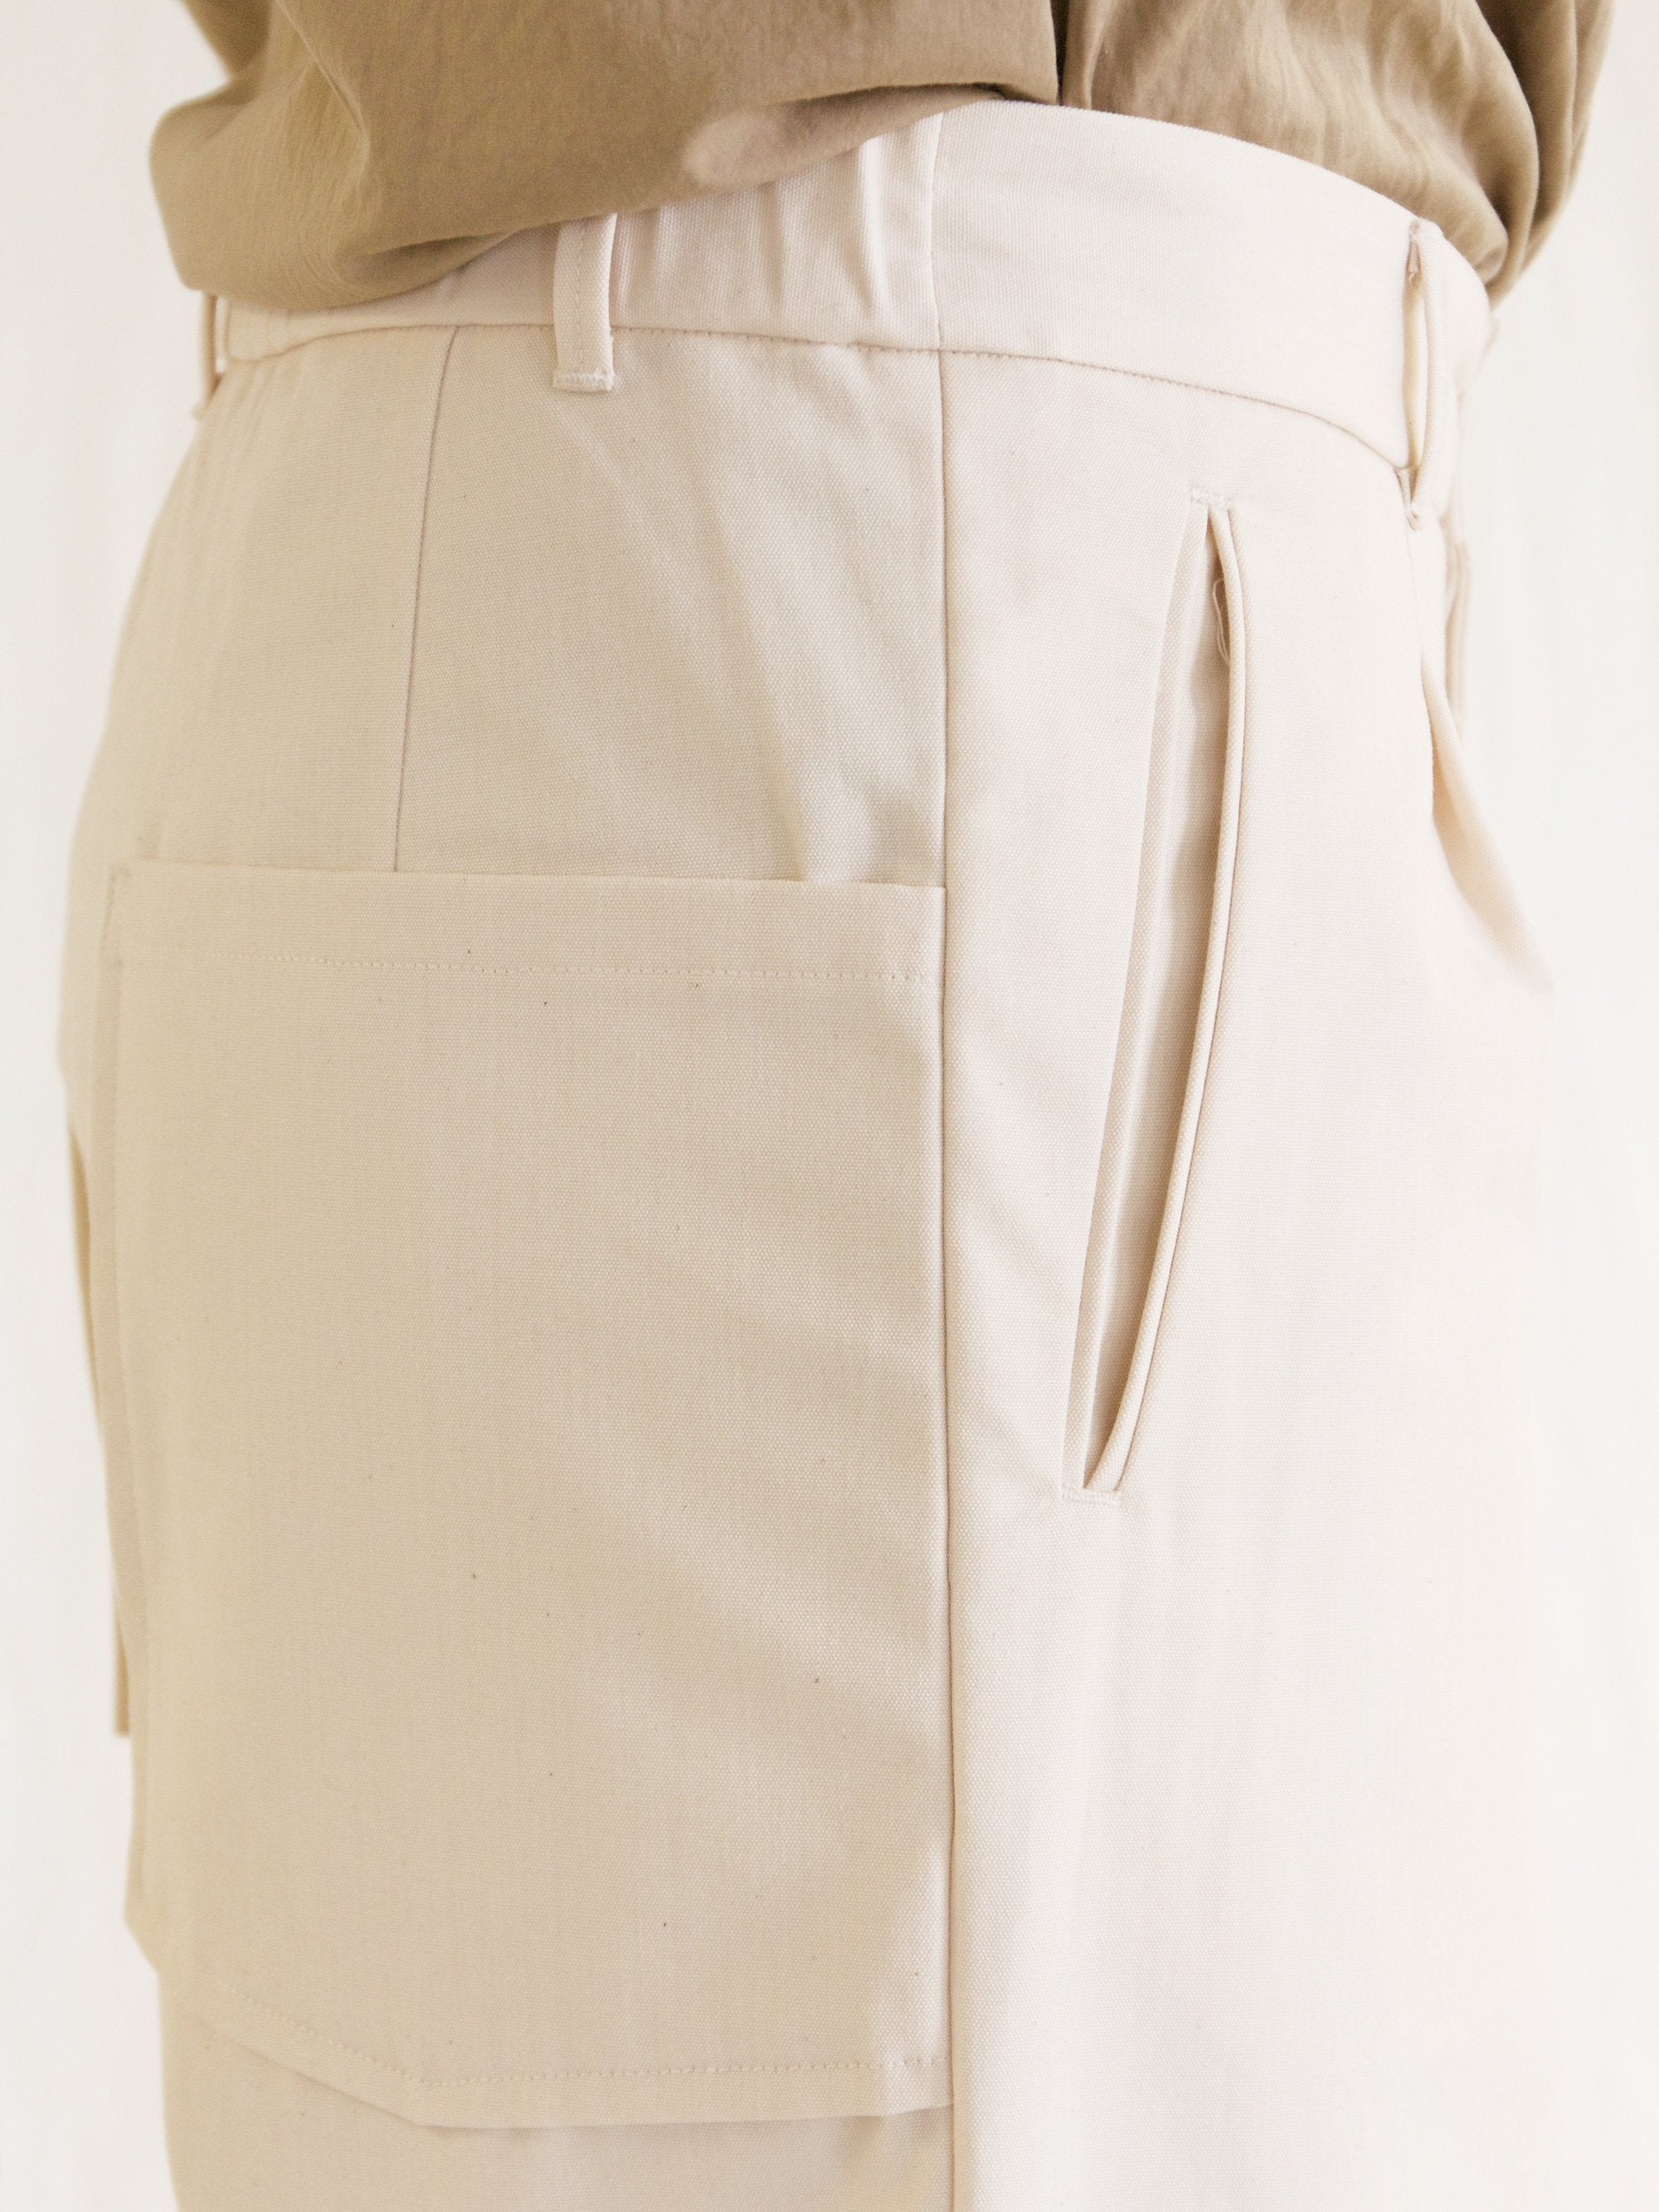 Namu Shop - A Vontade 1 Tuck Atelier Easy Pants